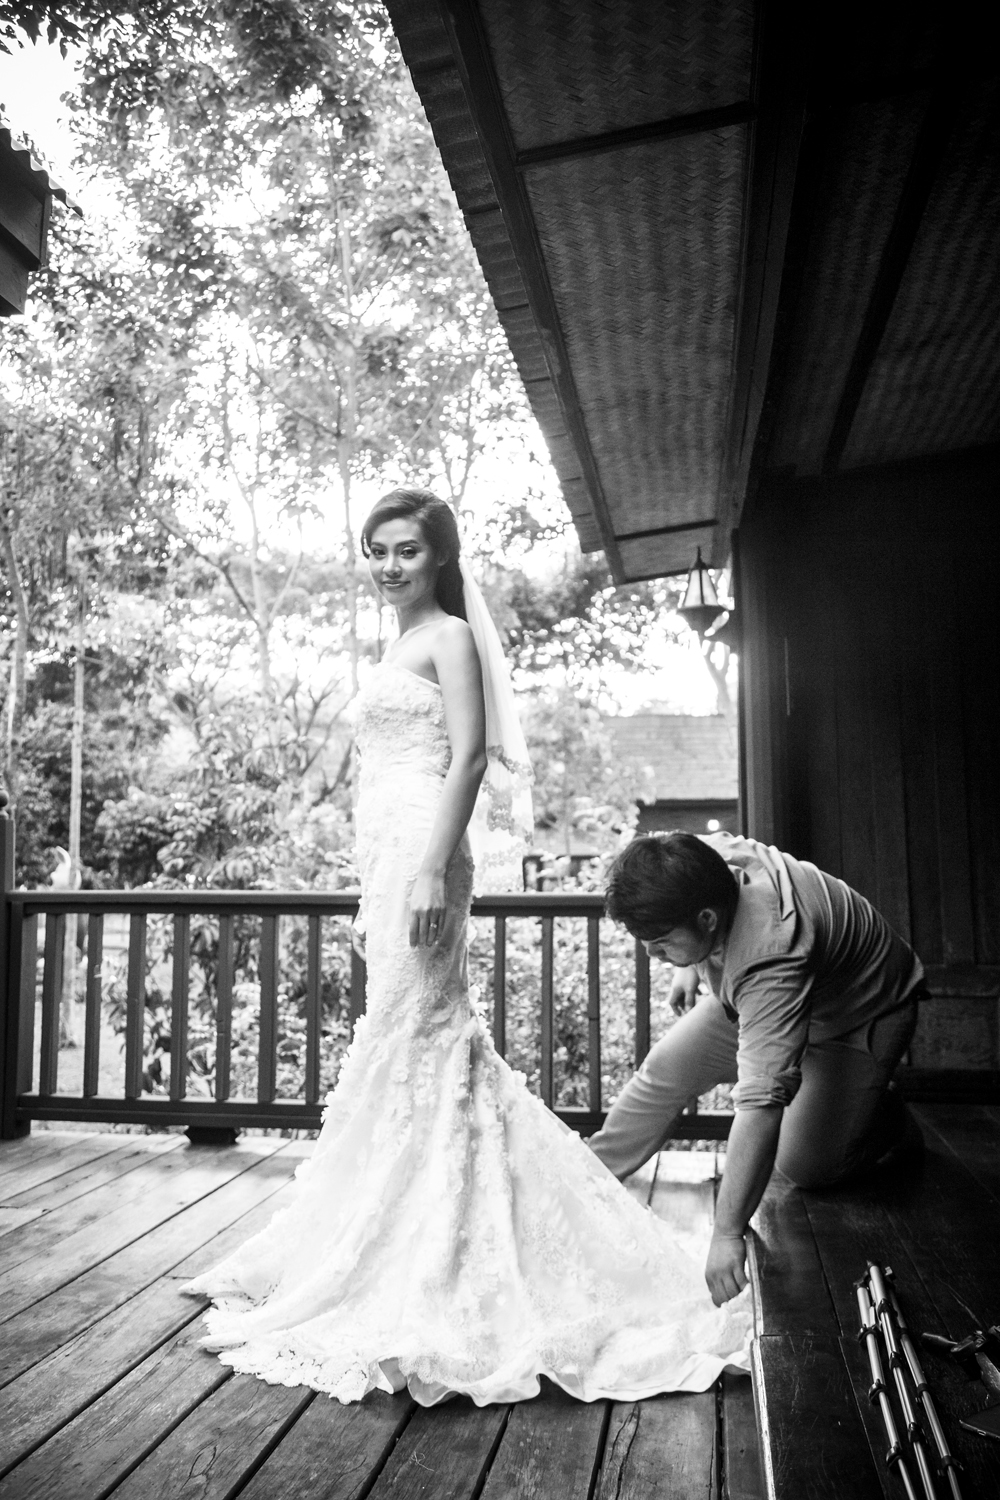 Ying-Paul-Wedding-36.jpg